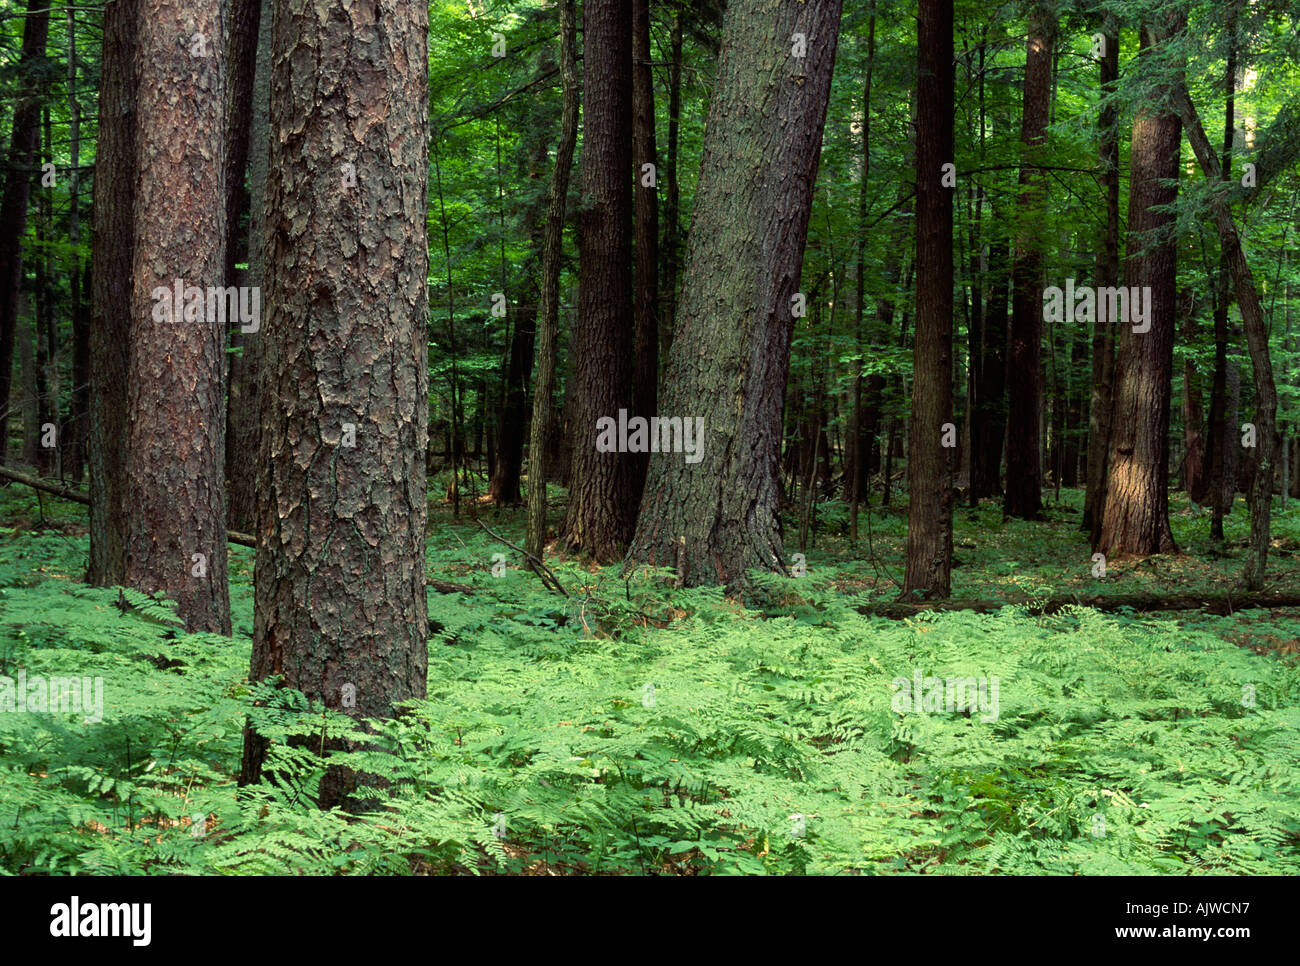 White pine and red pine forest, Hartwick Pines State Forest, Michigan - Stock Image